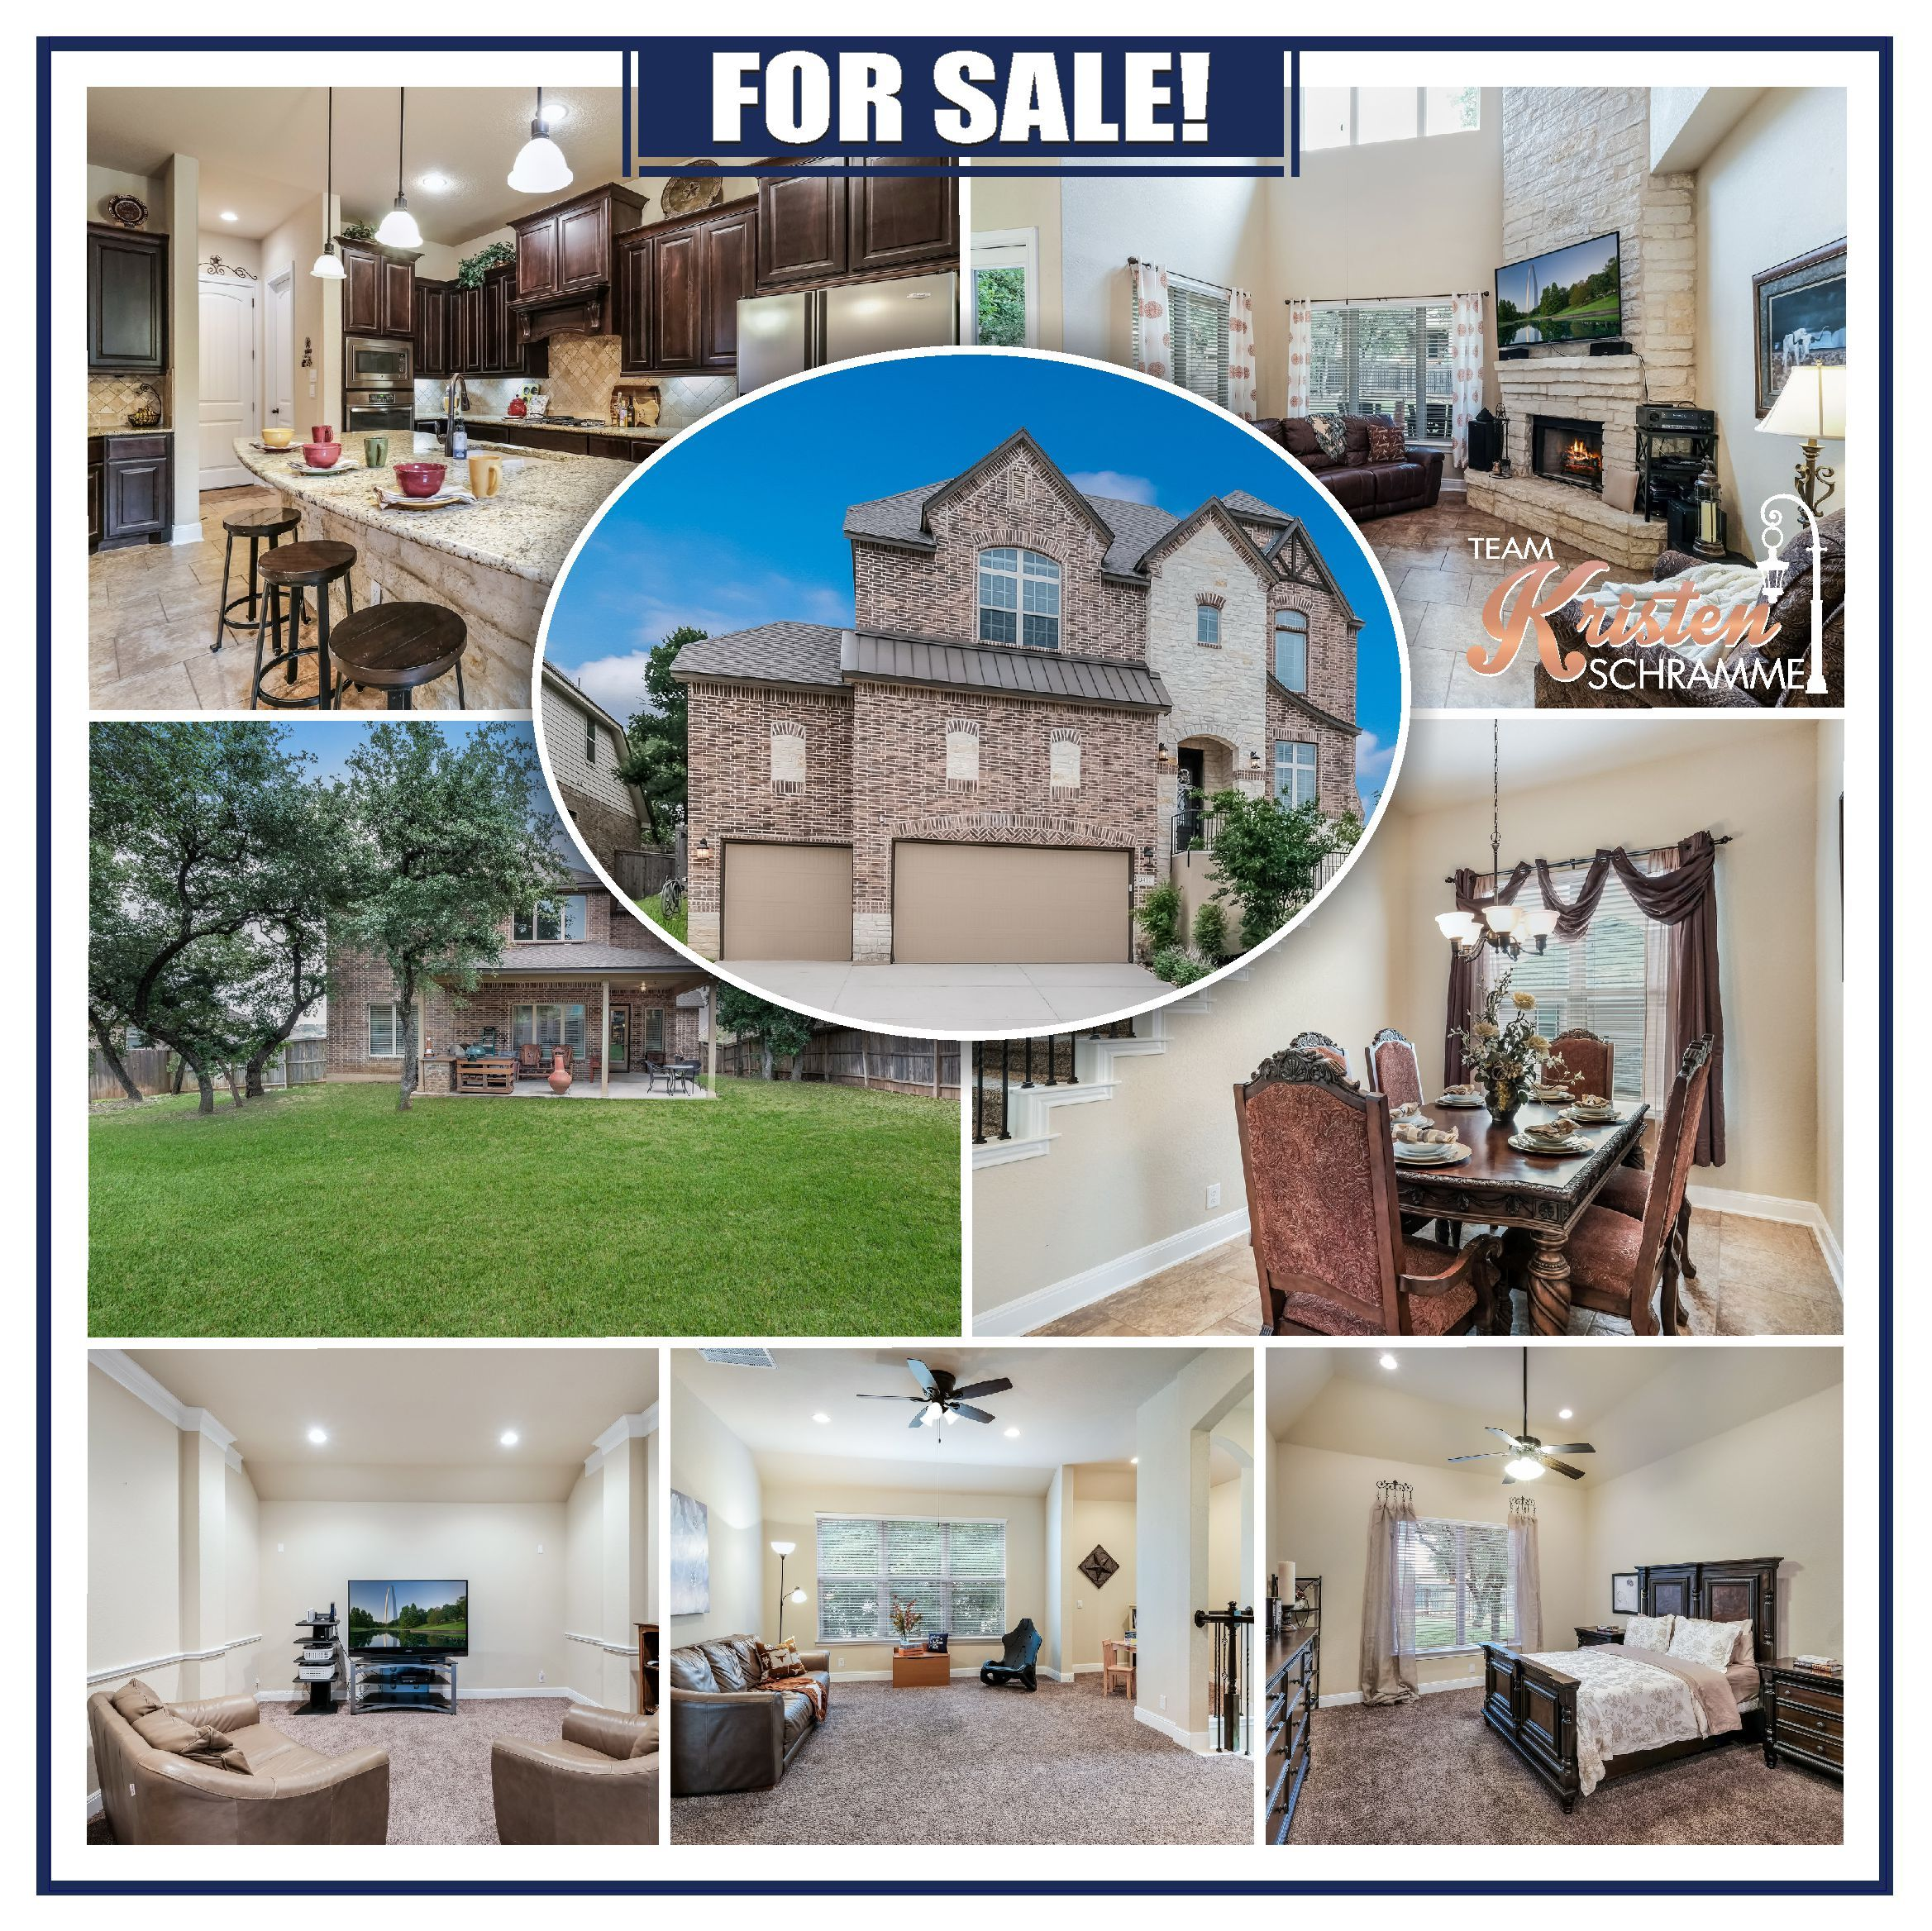 OPEN HOUSE SUNDAY! May 5, 2019 12PM3PM 4bd/3.5ba